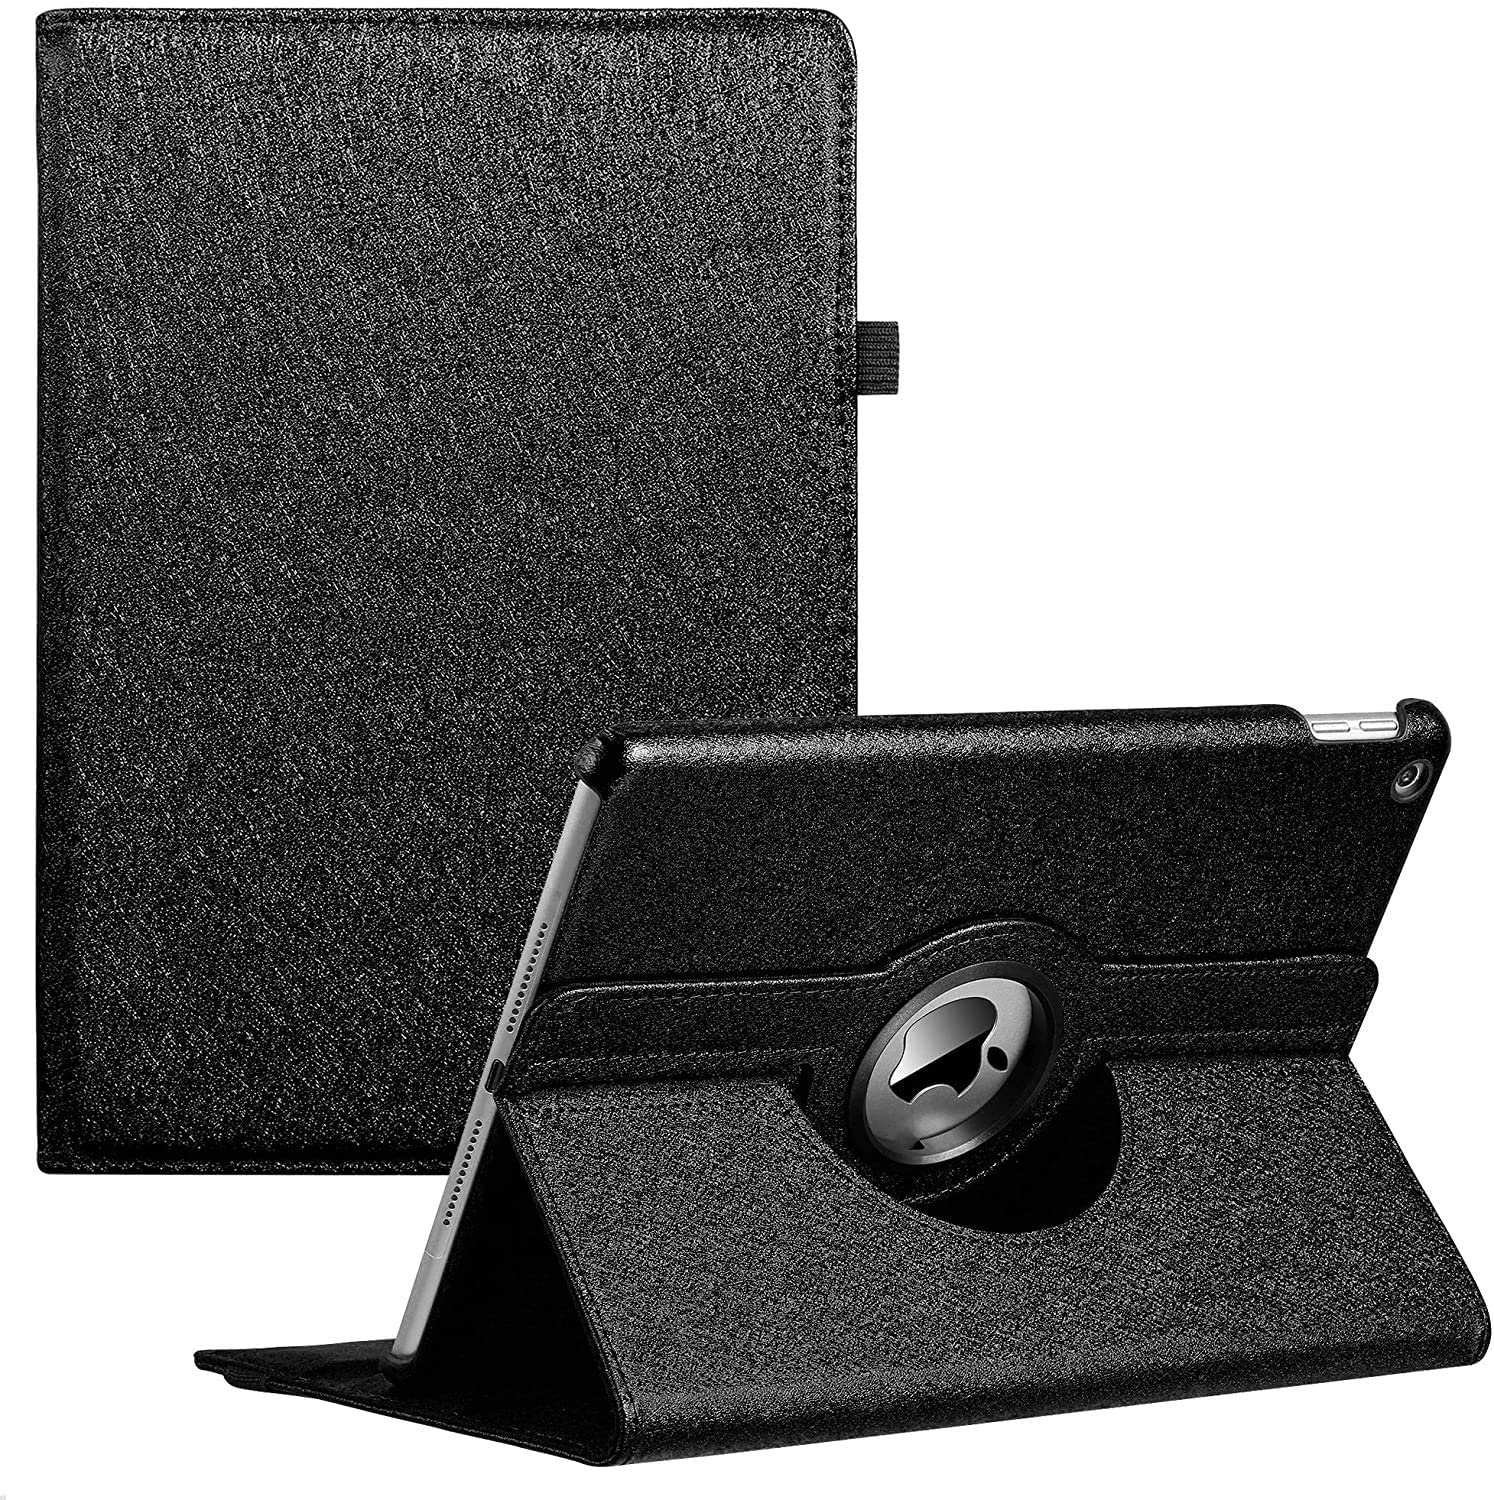 iPad Case Fit 2018/2017 iPad 9.7 6th/5th Generation - 360 Degree Rotating iPad Air Case Cover with Auto Wake/Sleep Compatible with Apple iPad 9.7 Inch 2018/2017 (Black)